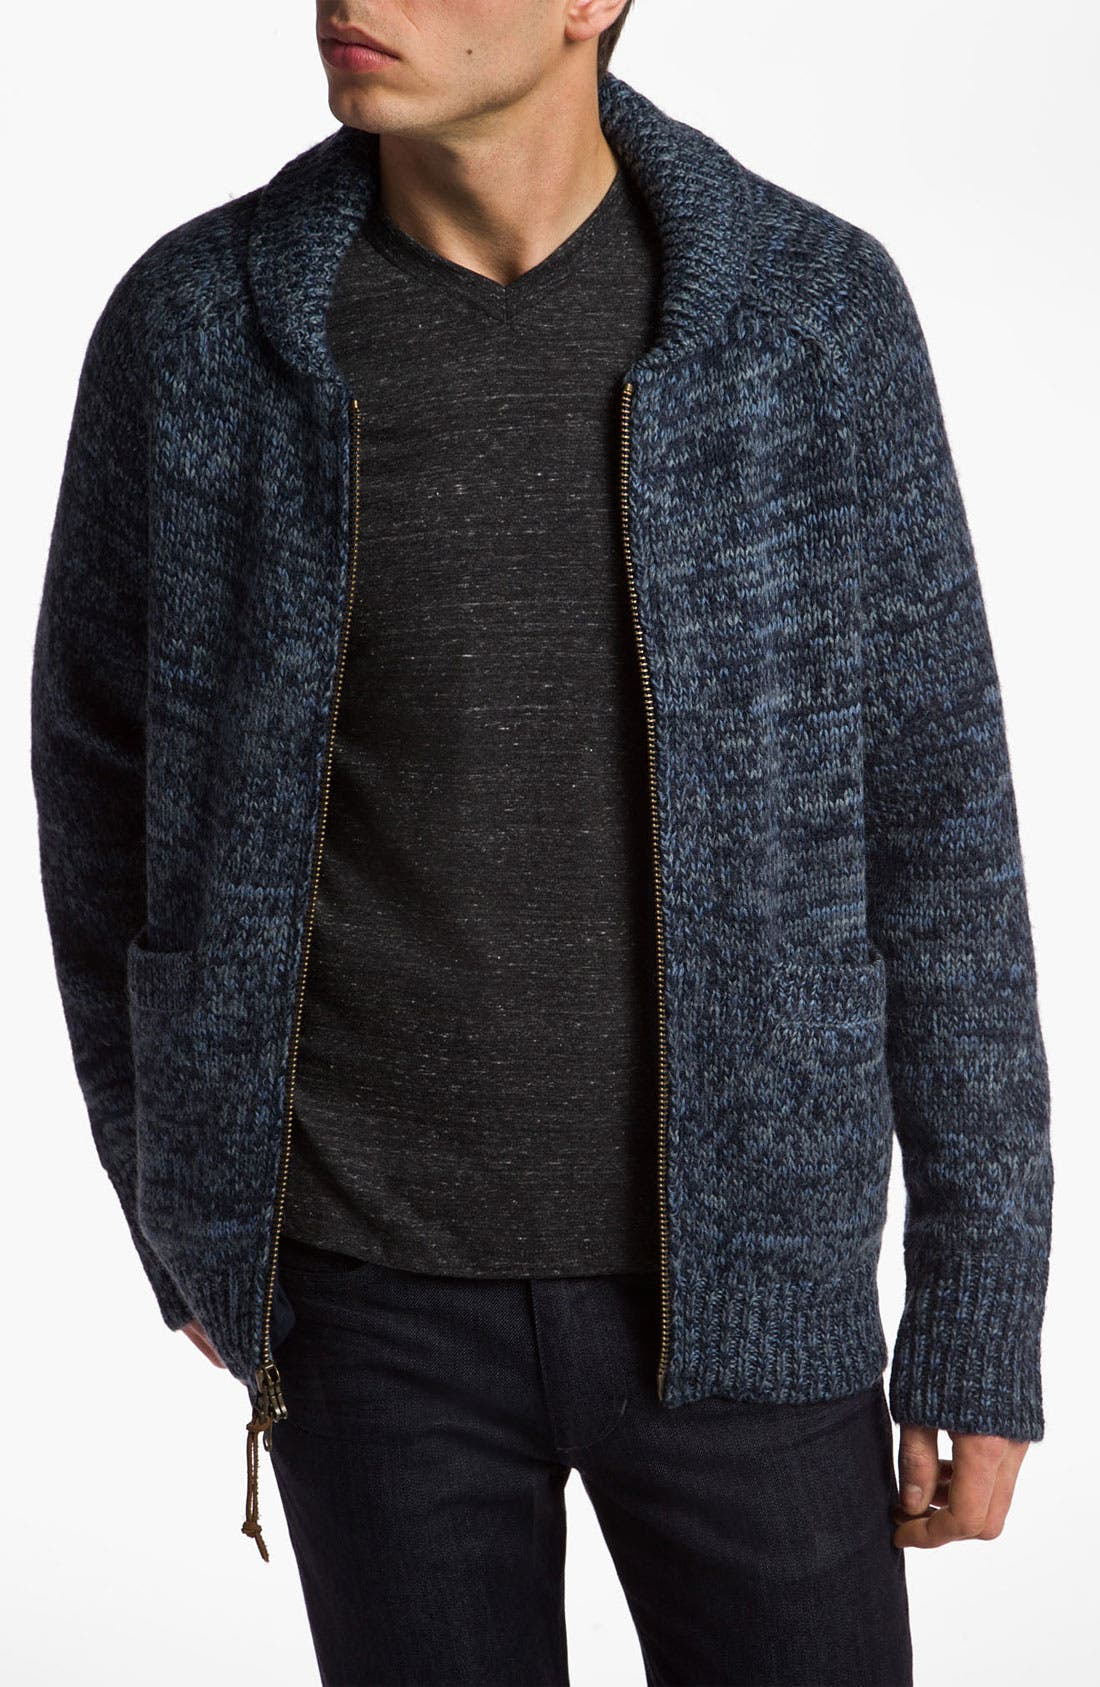 Alternate Image 1 Selected - VSTR 'Captains' Wool Blend Zip Cardigan